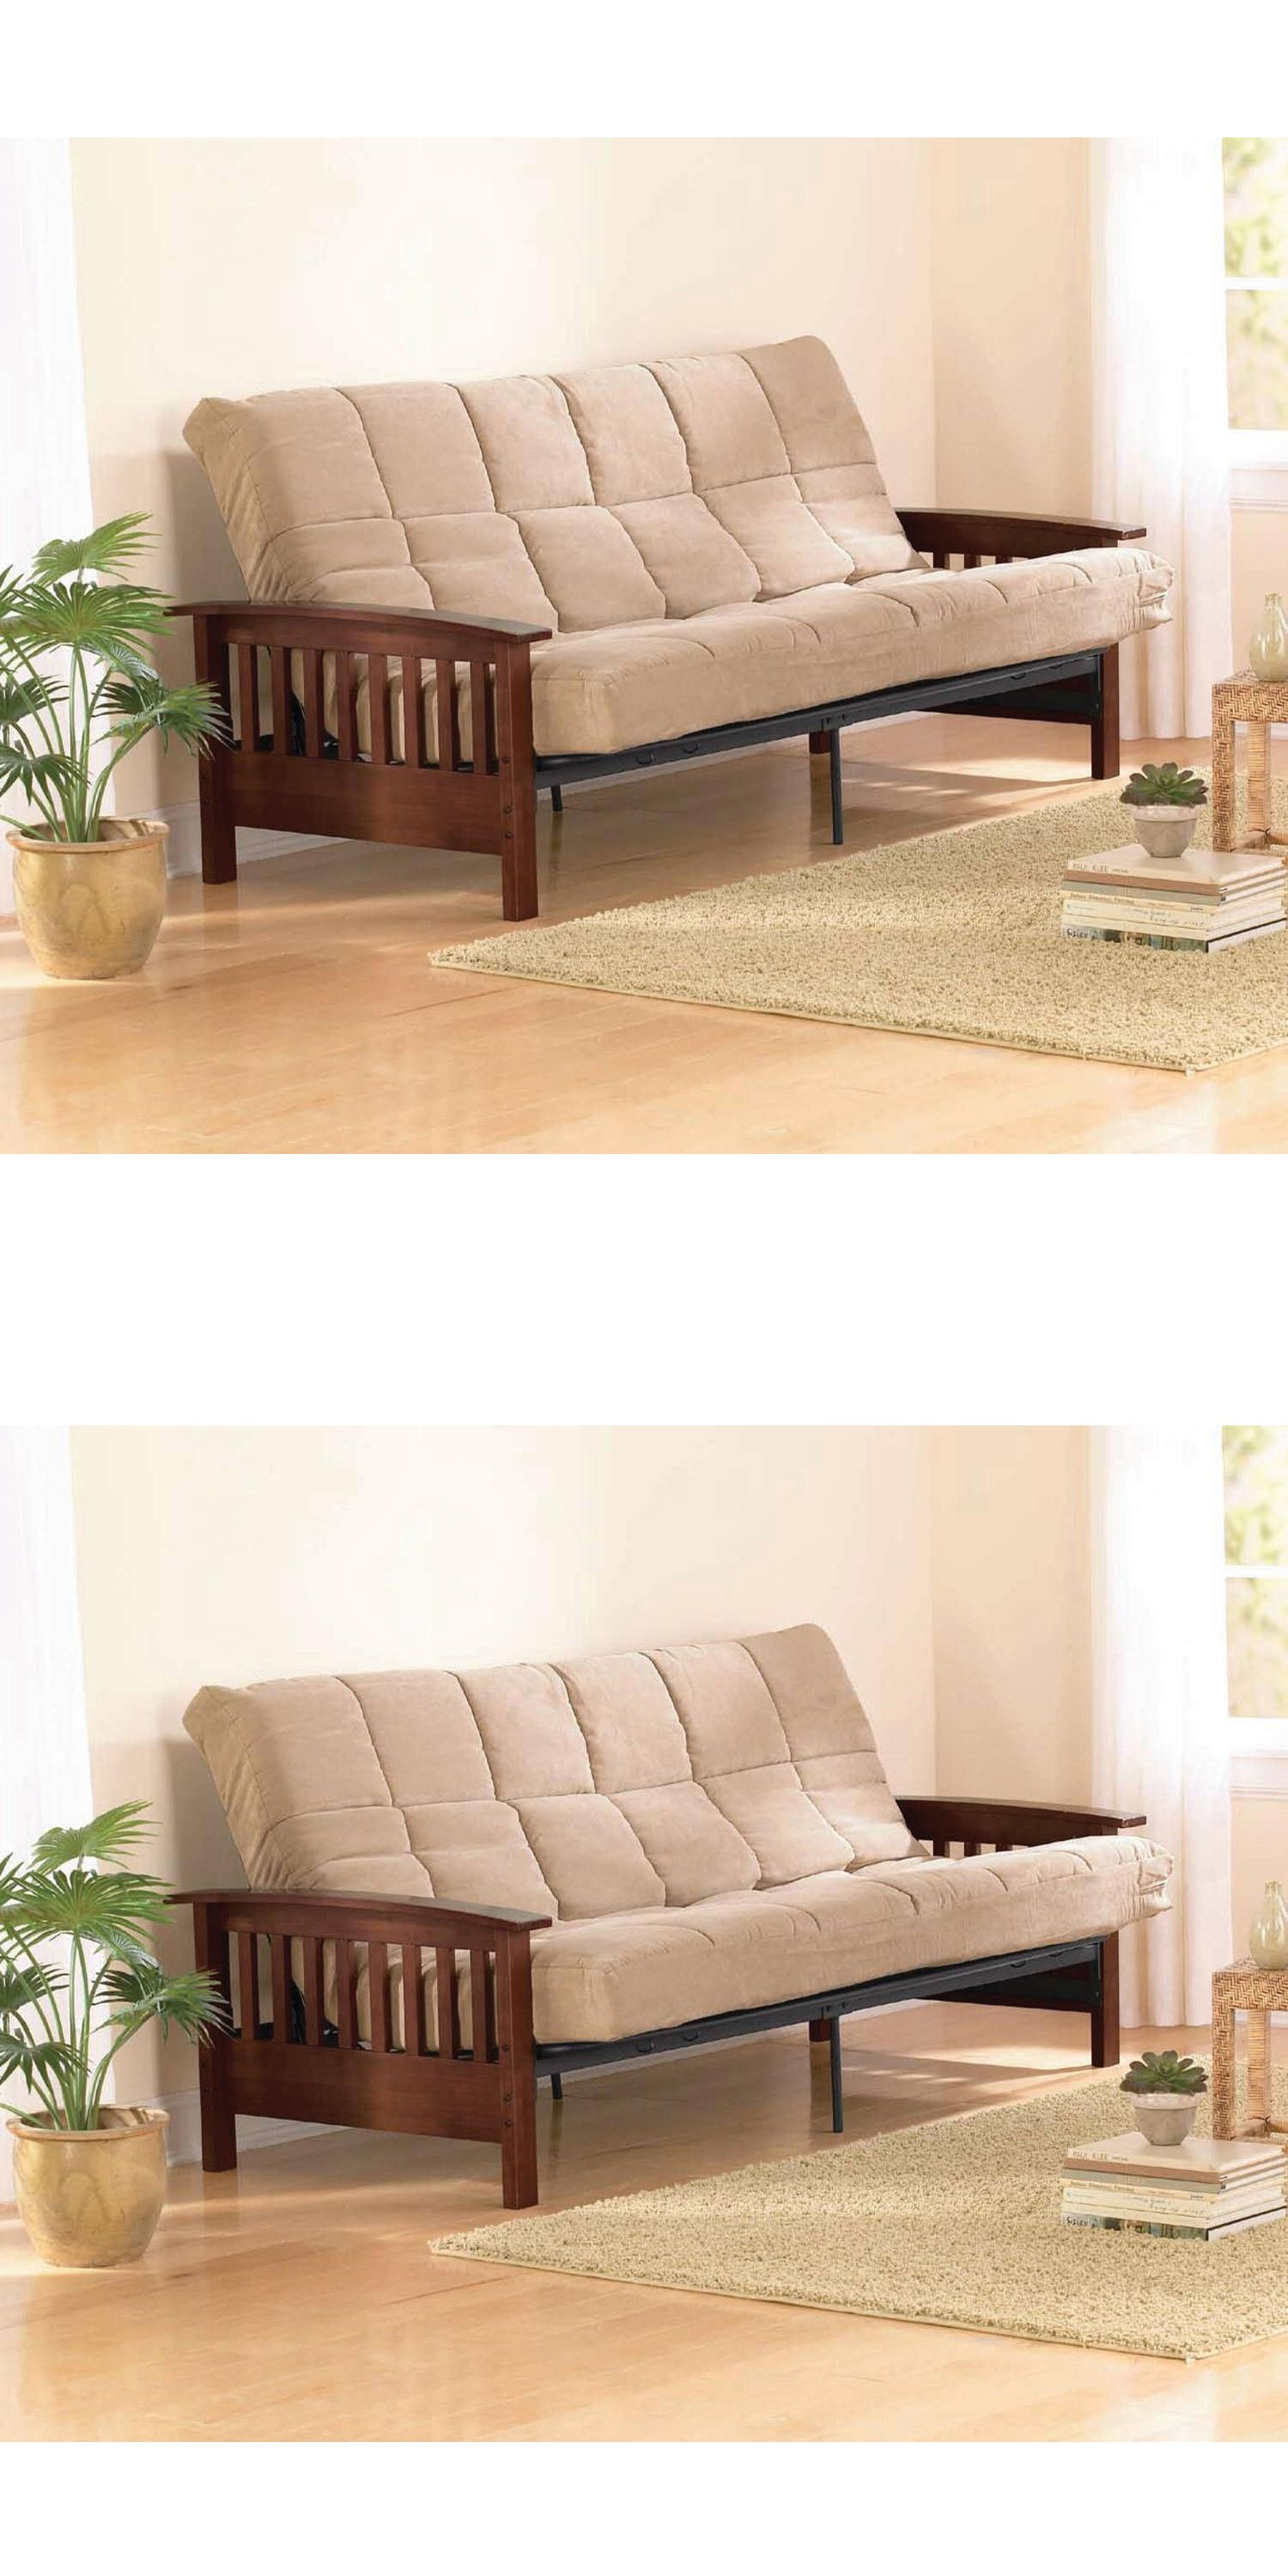 Futons Frames and Covers 131579: Convertible Futon Sofa Bed Couch Full Size  Mattress Solid Living